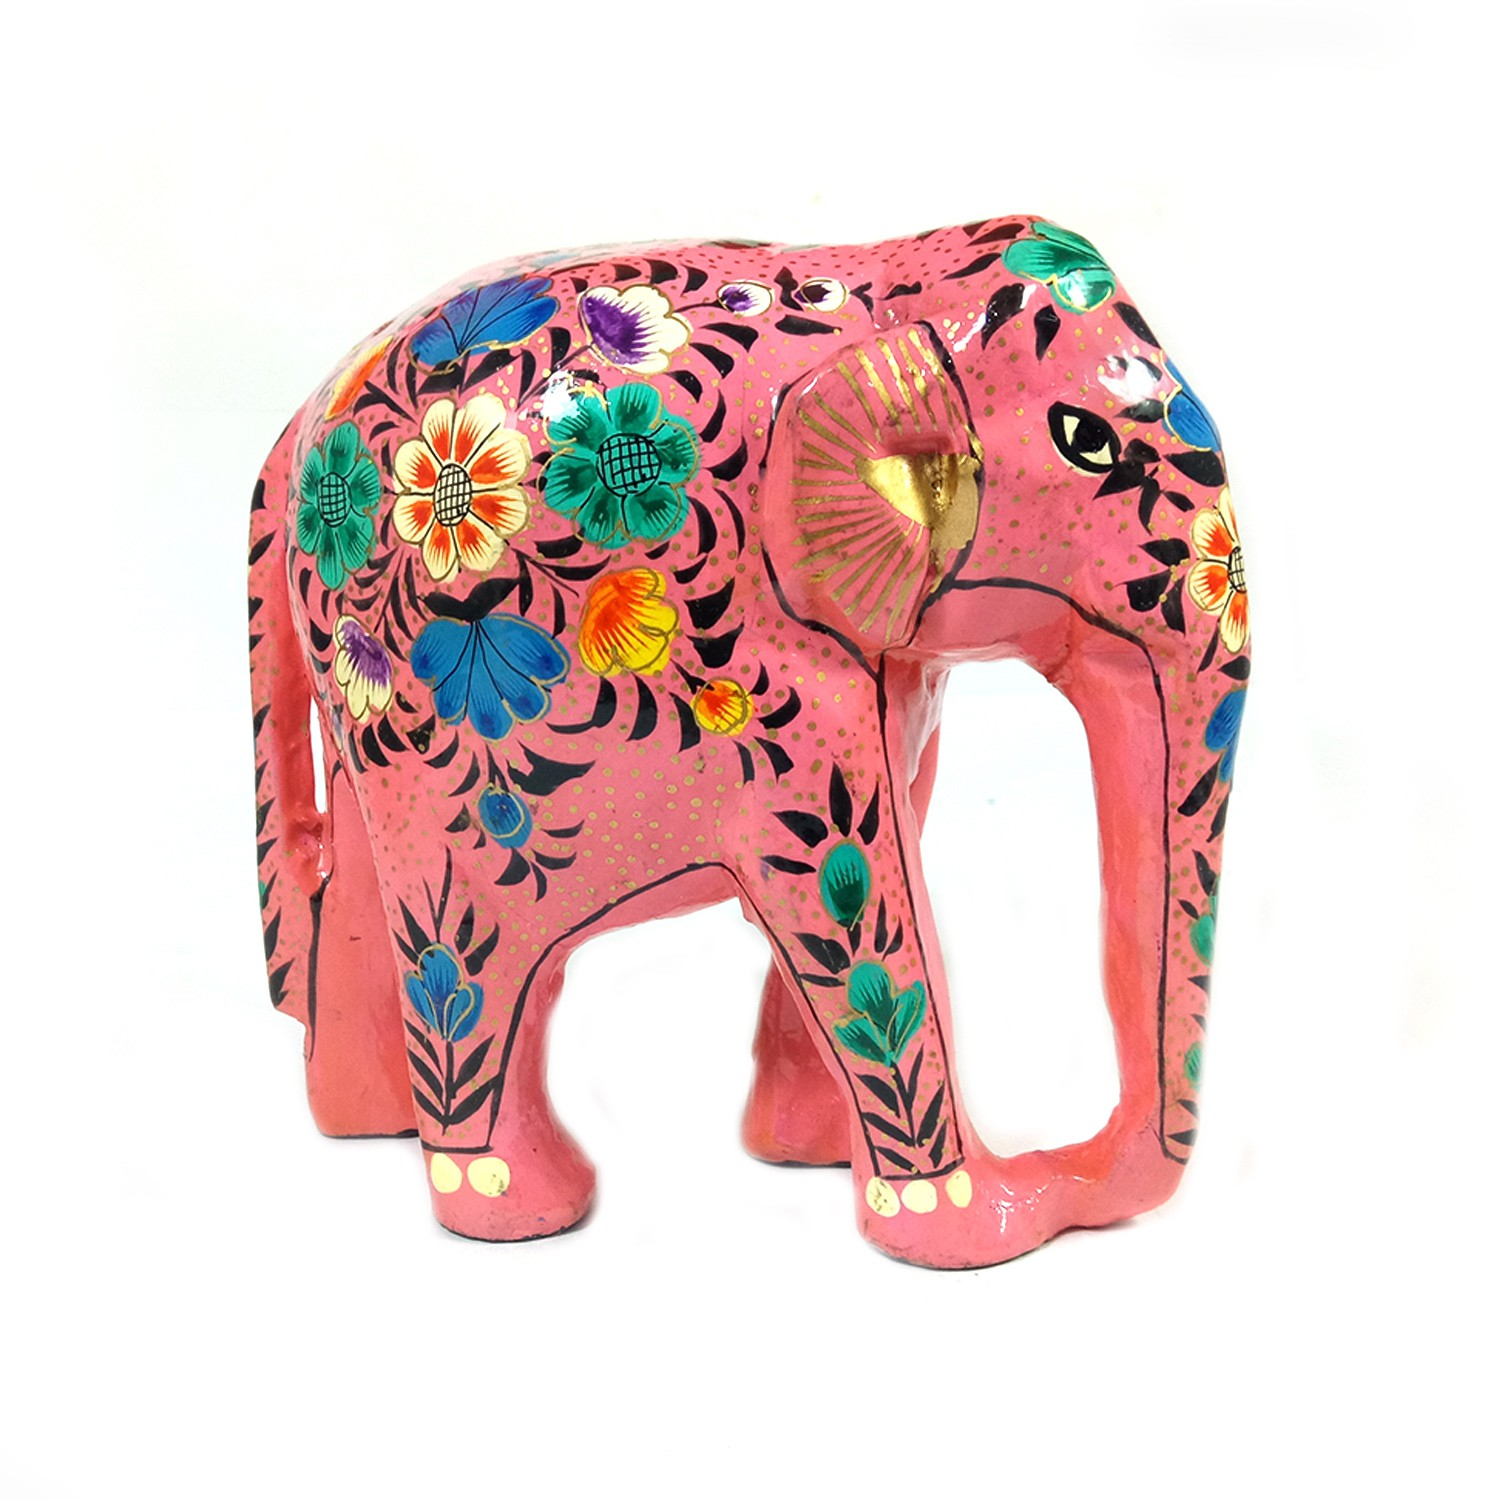 Handmade exclusive paper mache Pink Elephant  By Rural Artisan.